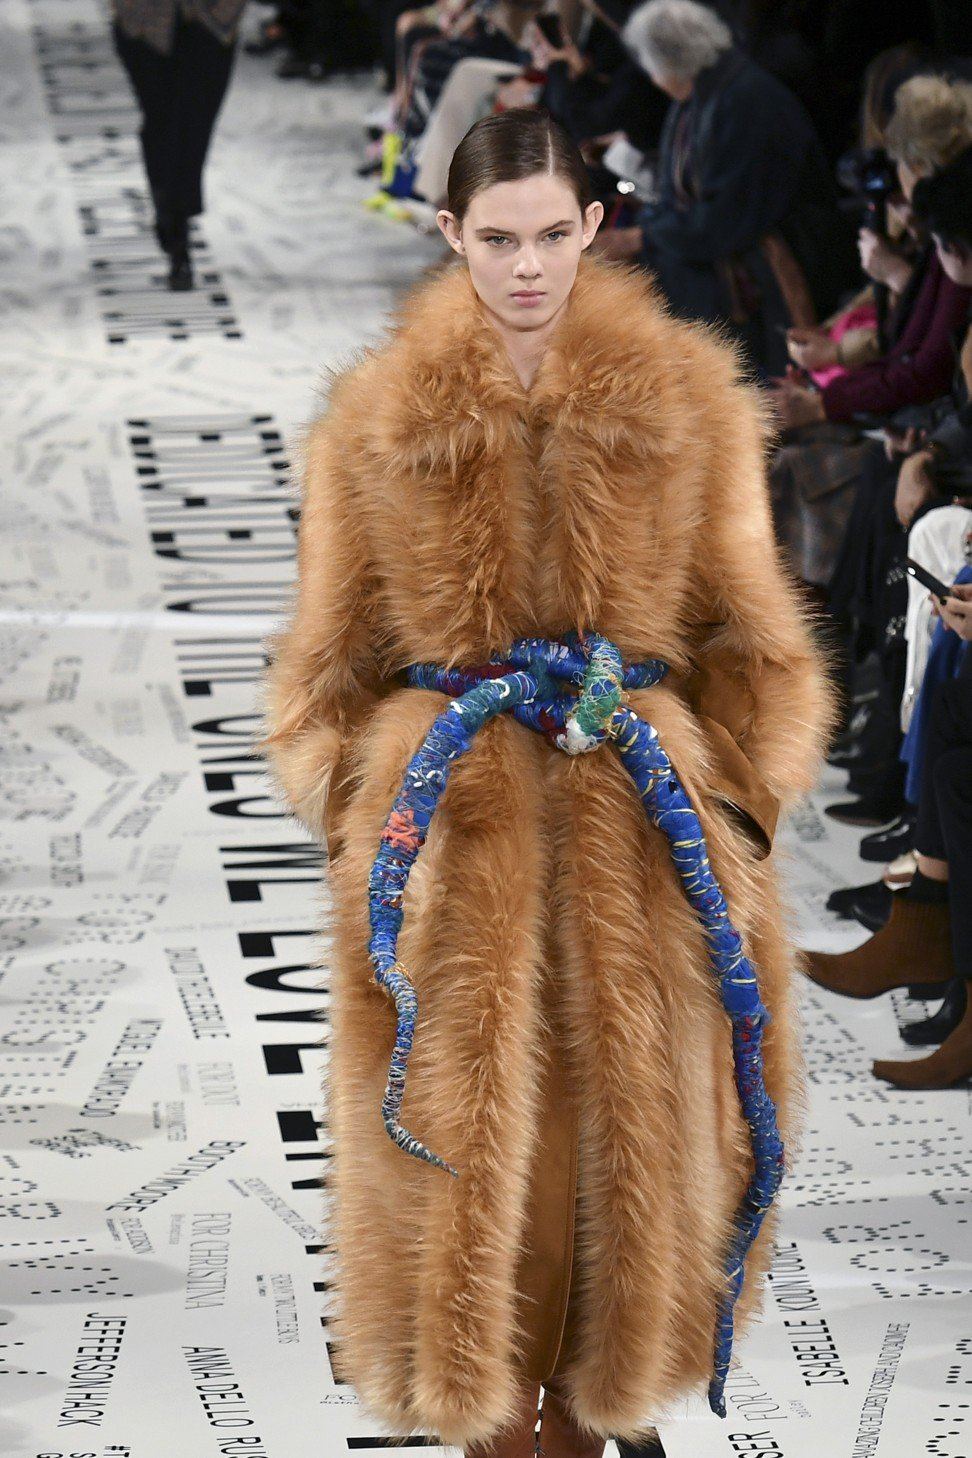 46675a7e0a30 Paris Fashion Week review  highs and lows of the top designers and brands  at this year s event